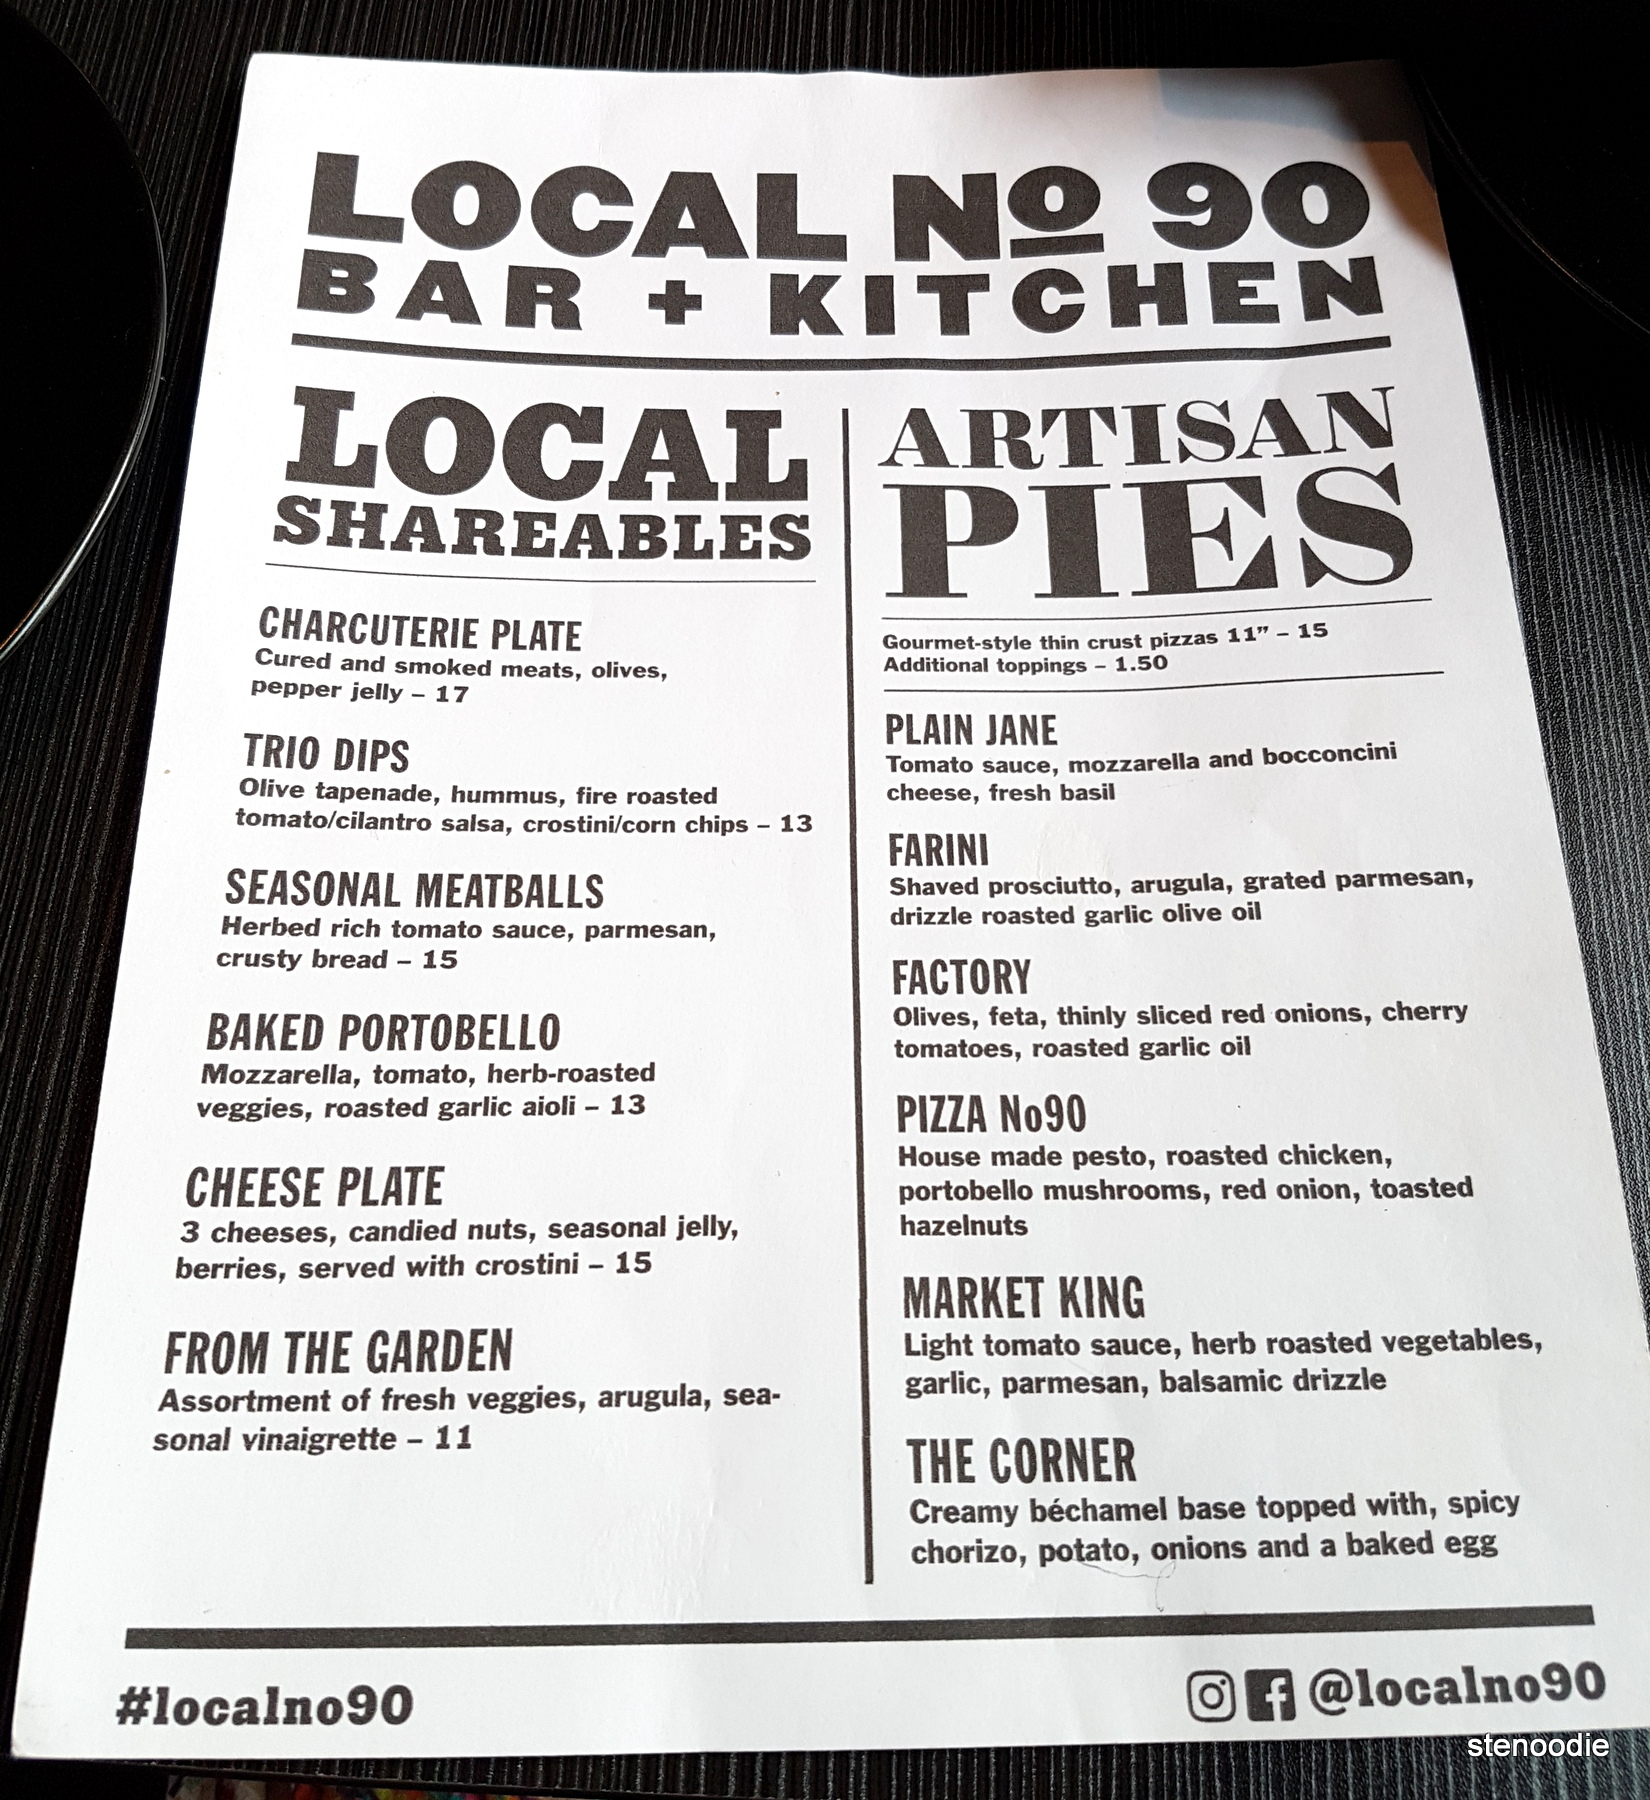 Local No90 Bar + Kitchen menu and prices